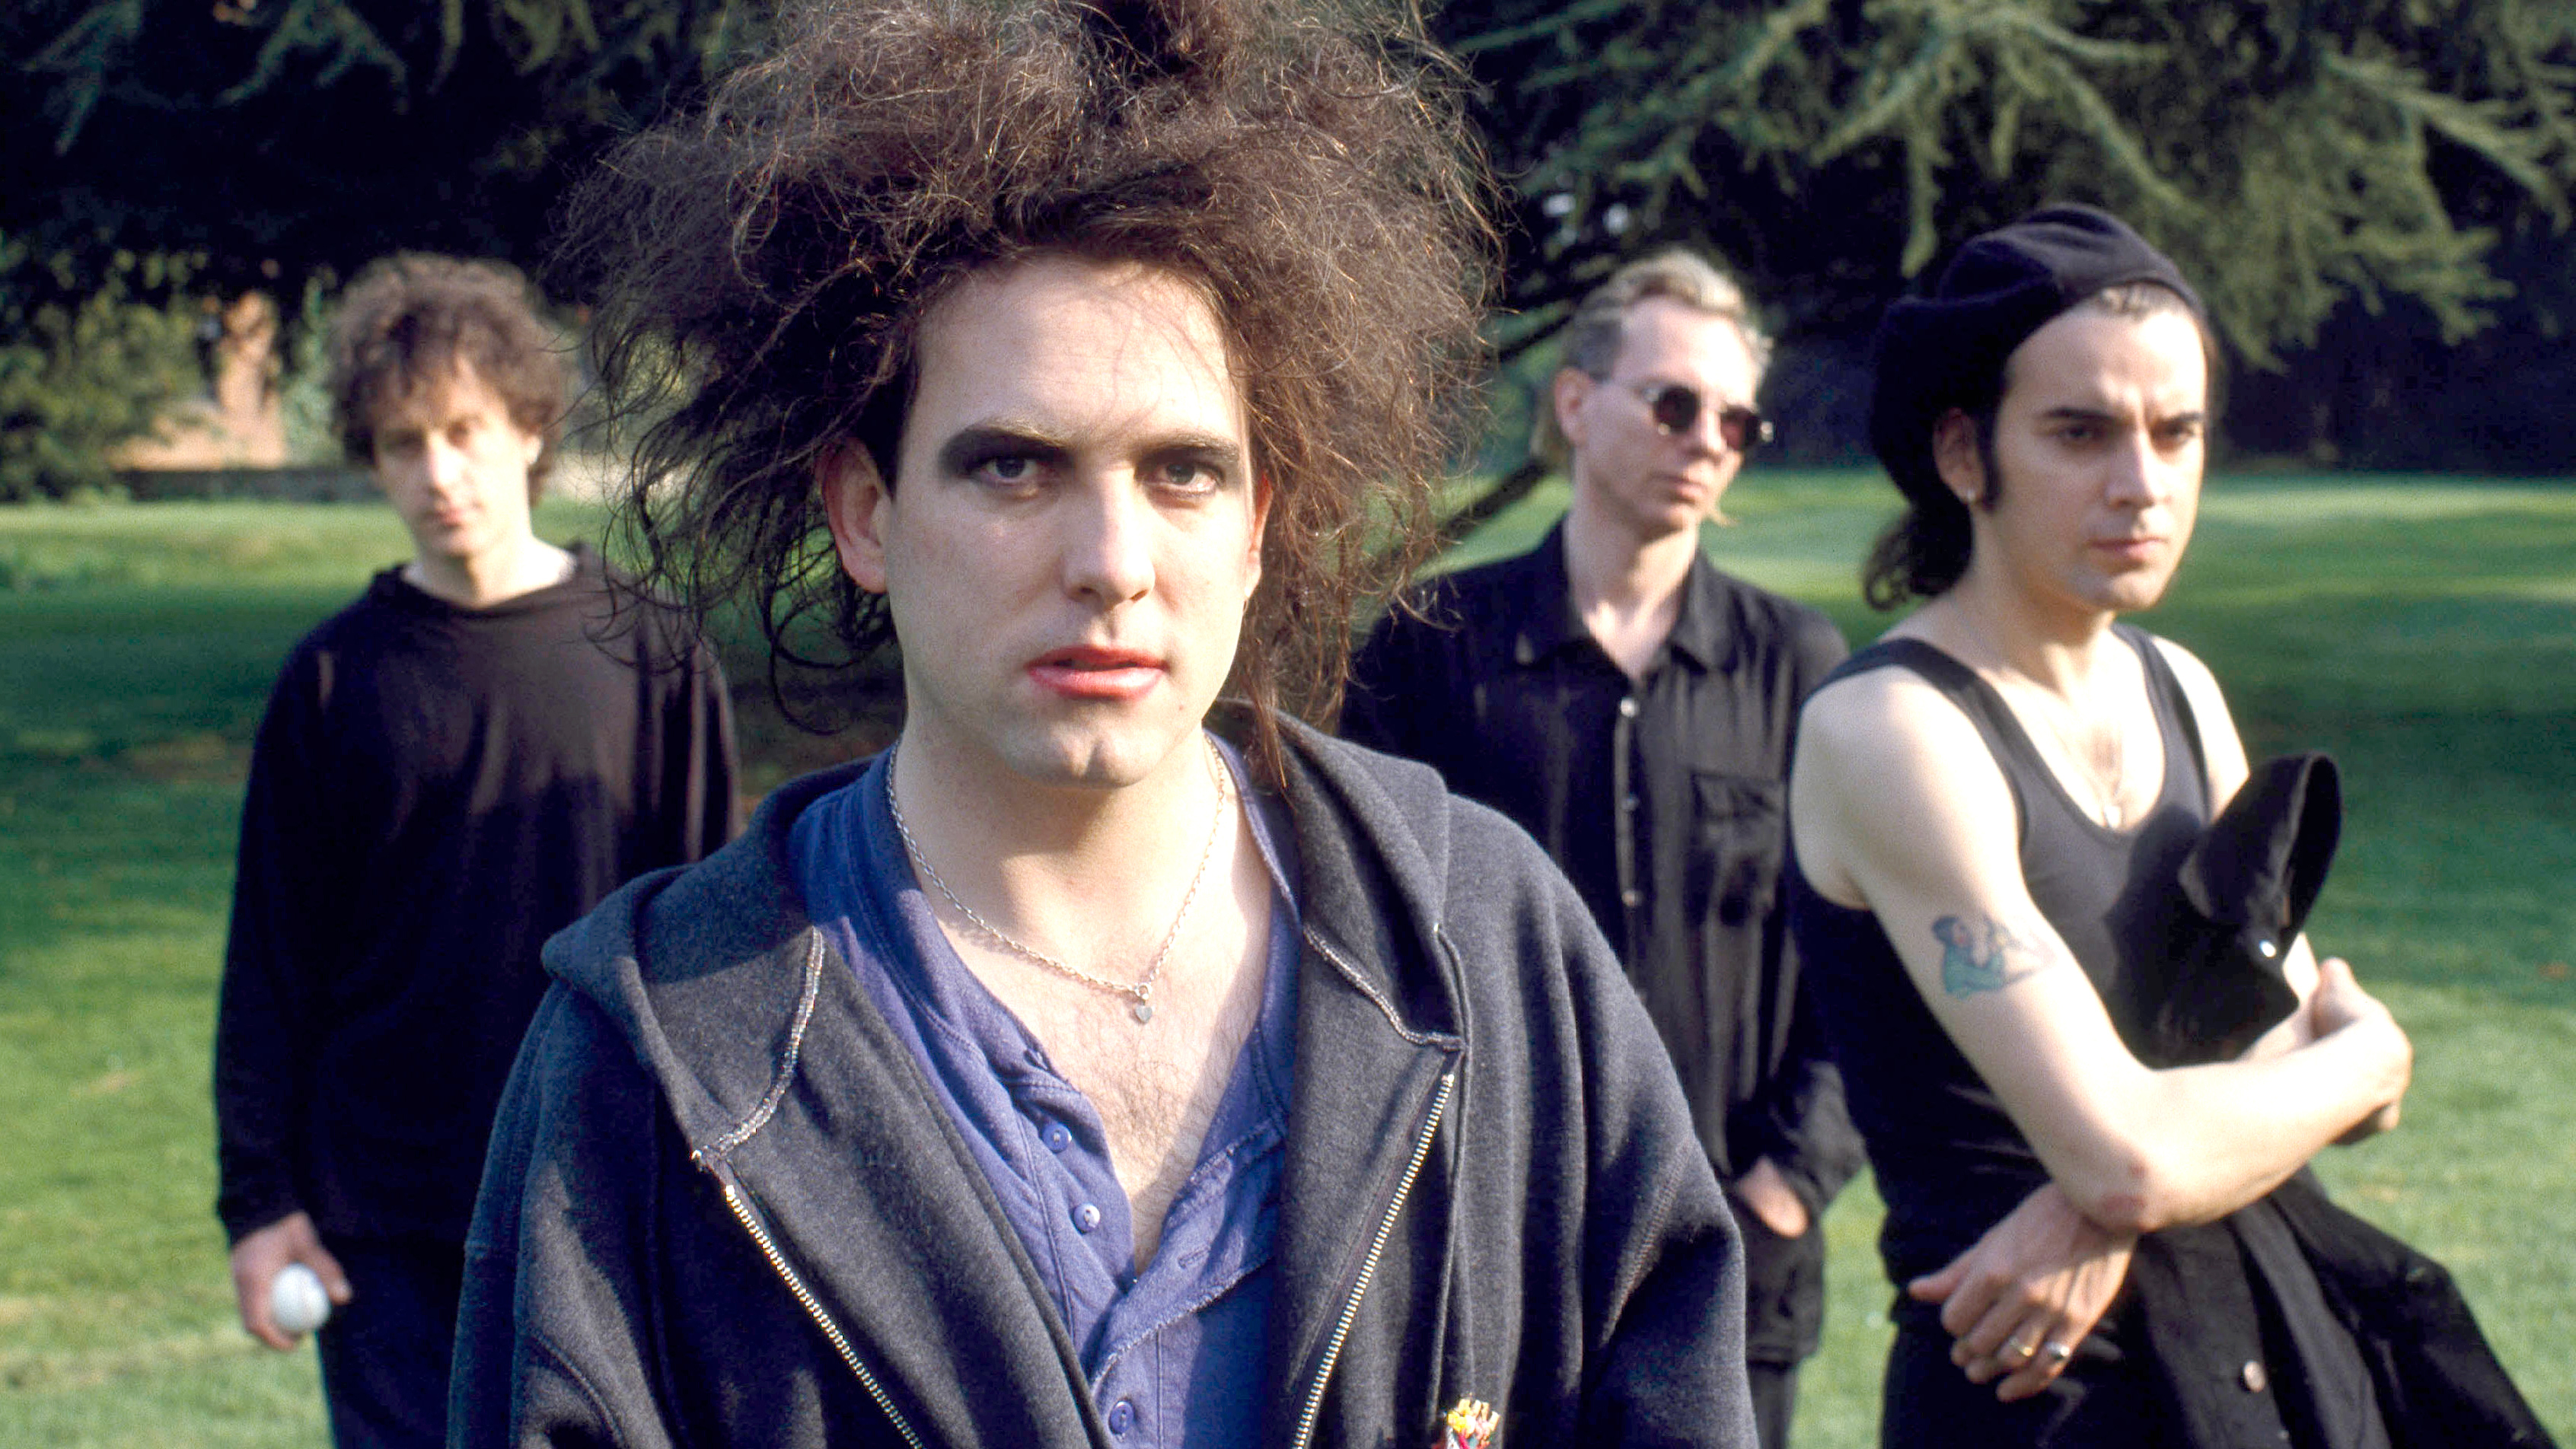 The Cure's 'Friday I'm in Love': 7 Things You Didn't Know